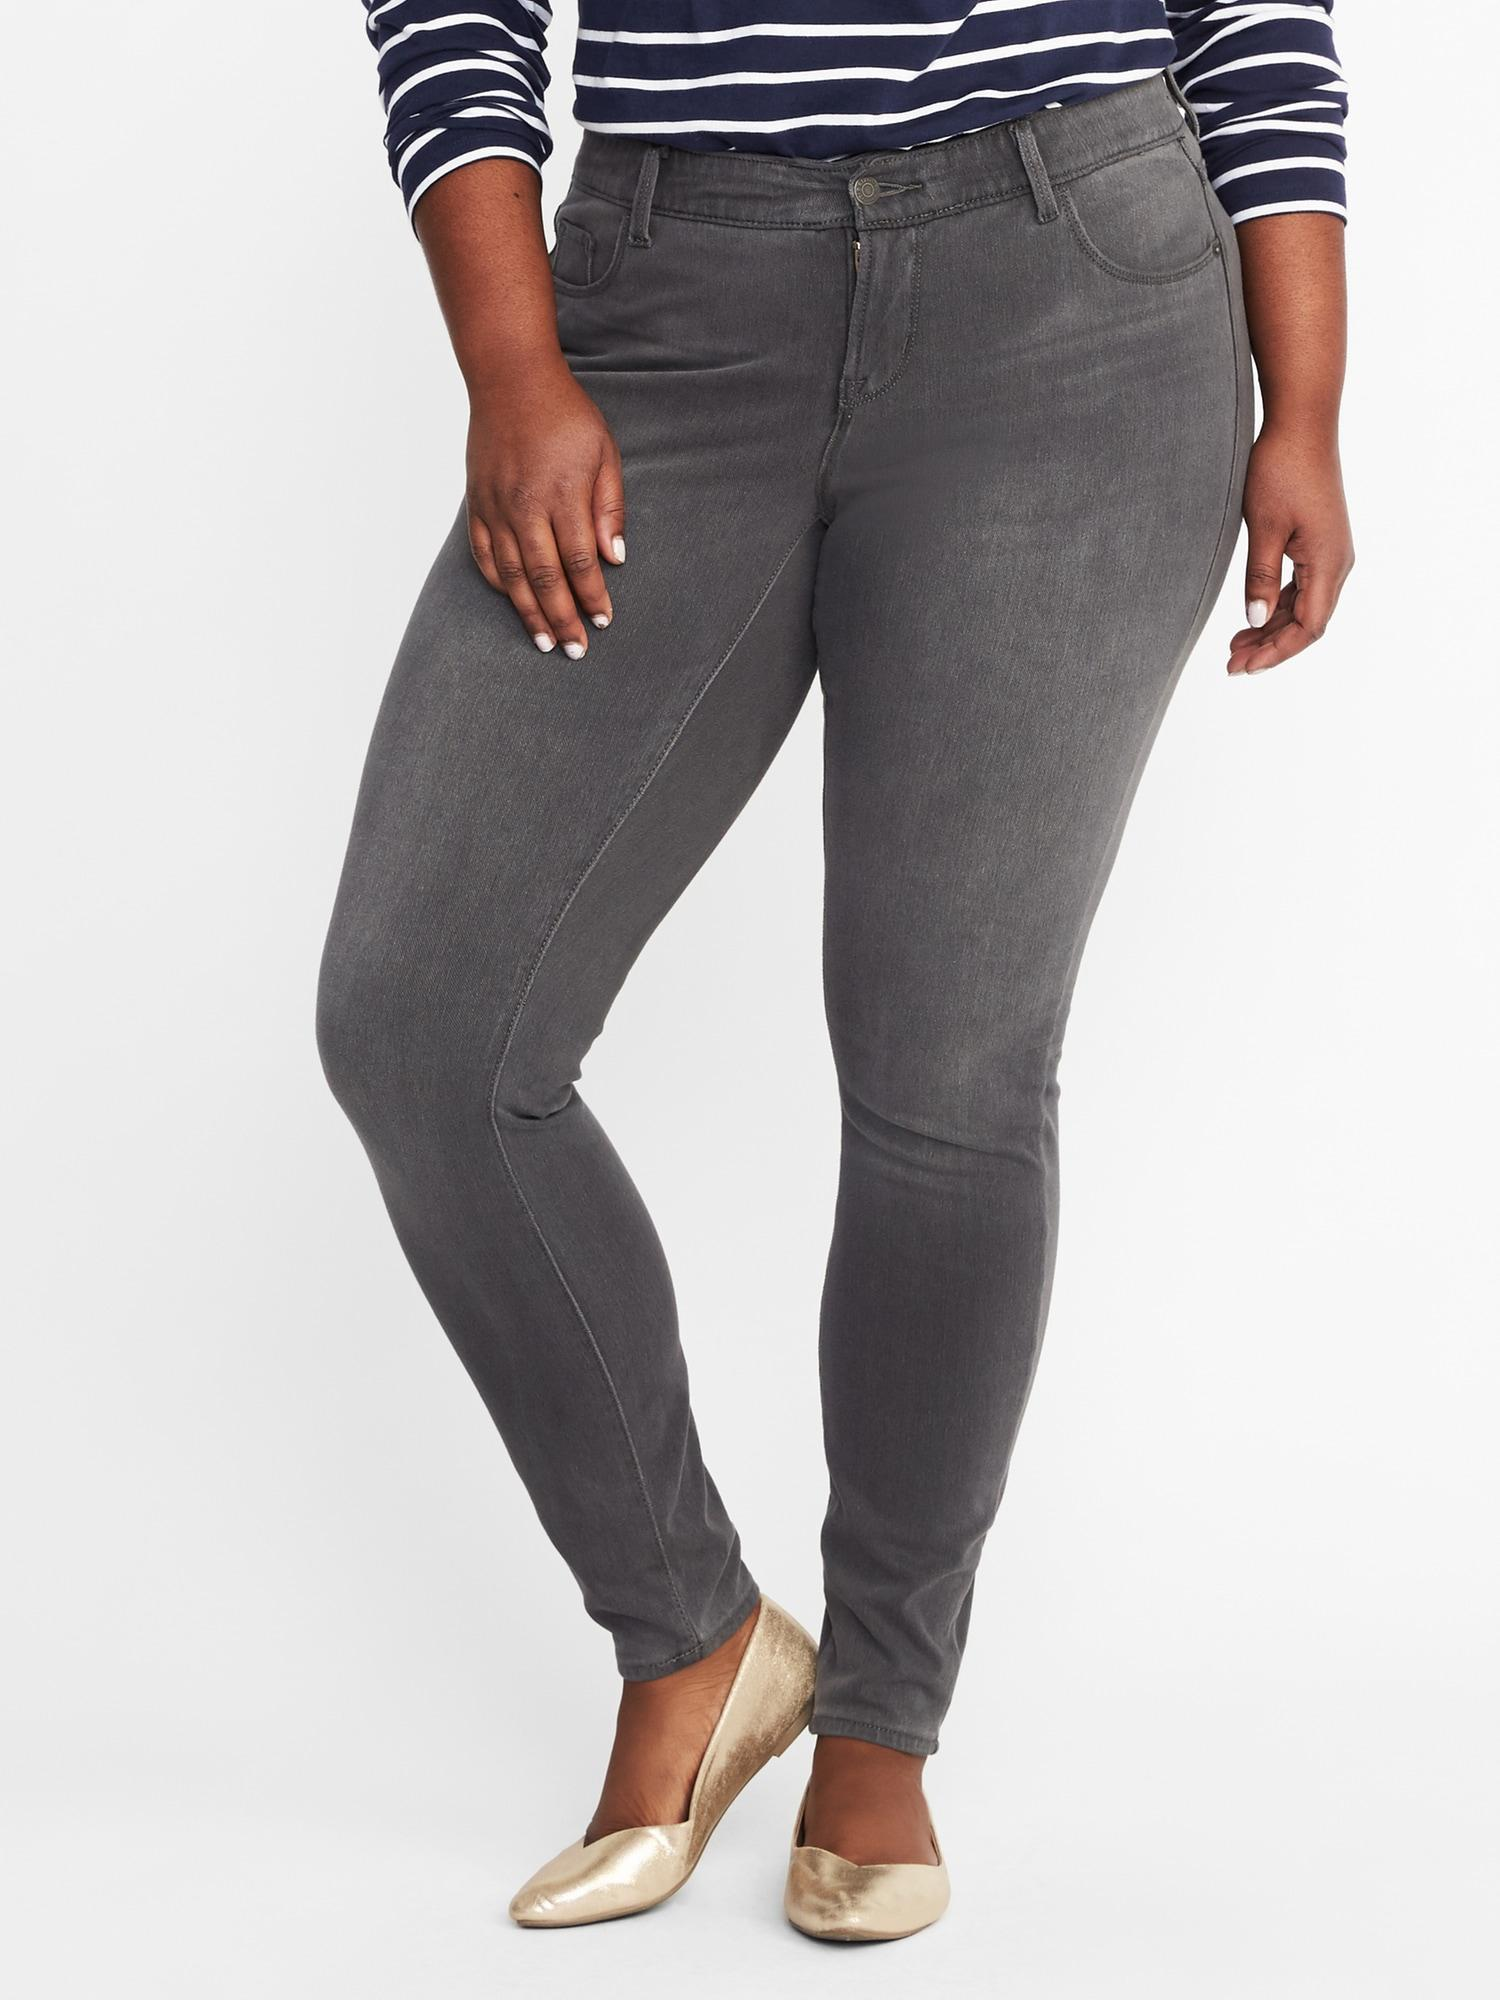 be4a124c865 Old Navy. Women s Gray High-rise Secret-slim Pockets + Waistband Plus-size  Rockstar 24 7 Jeans